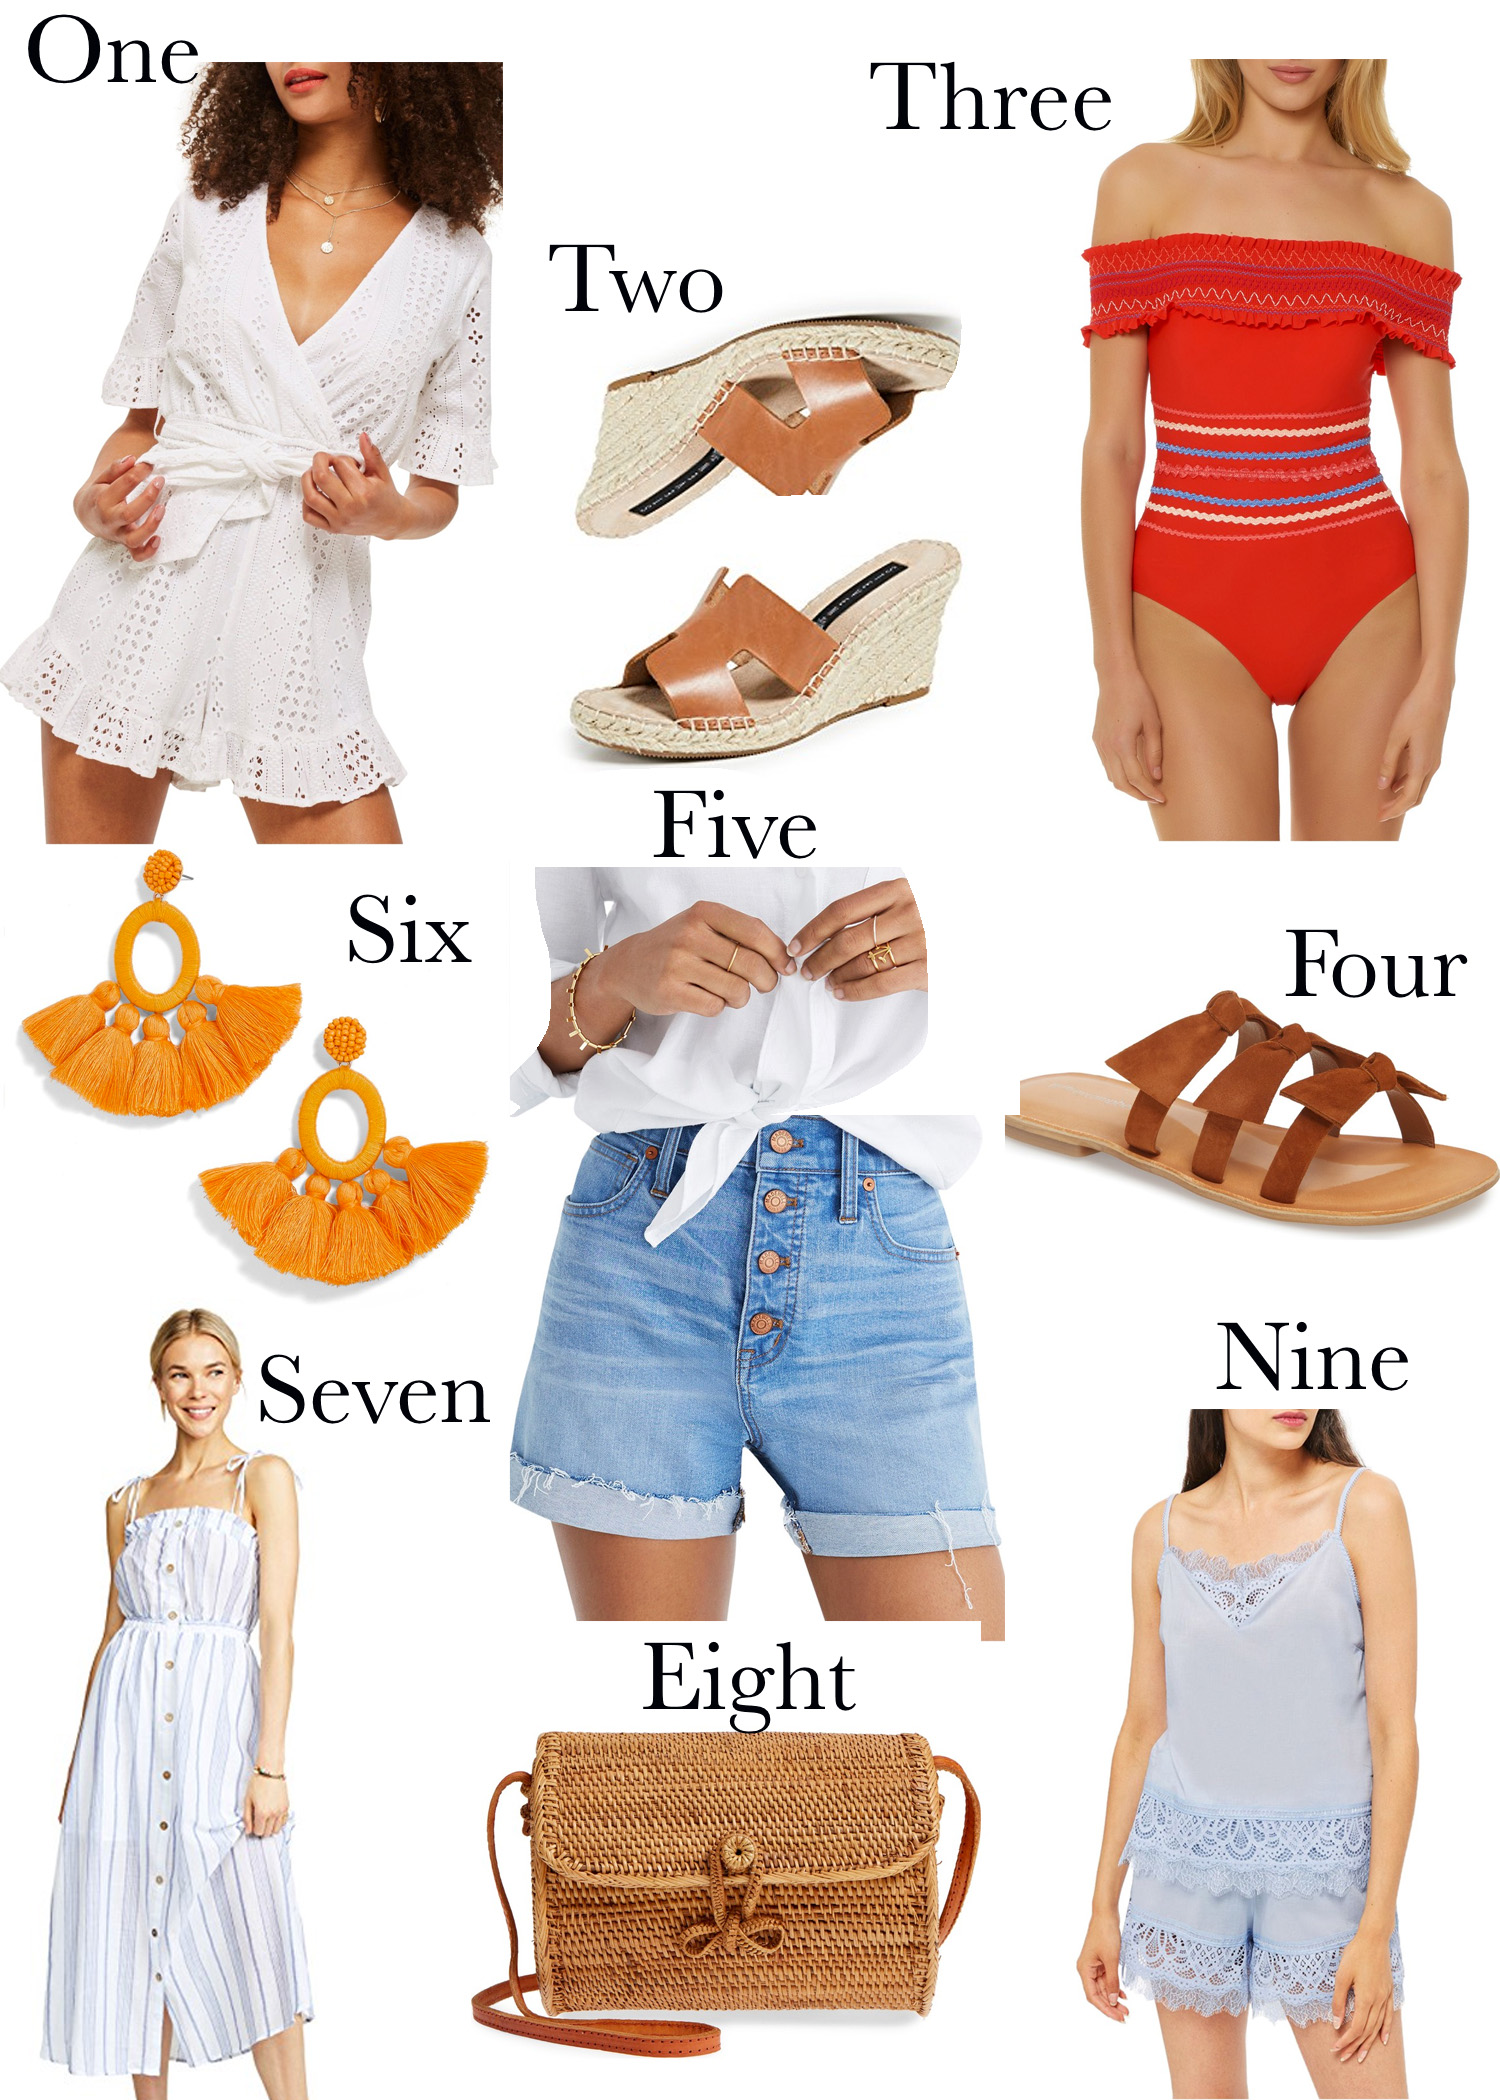 Items I'm Loving for Summer